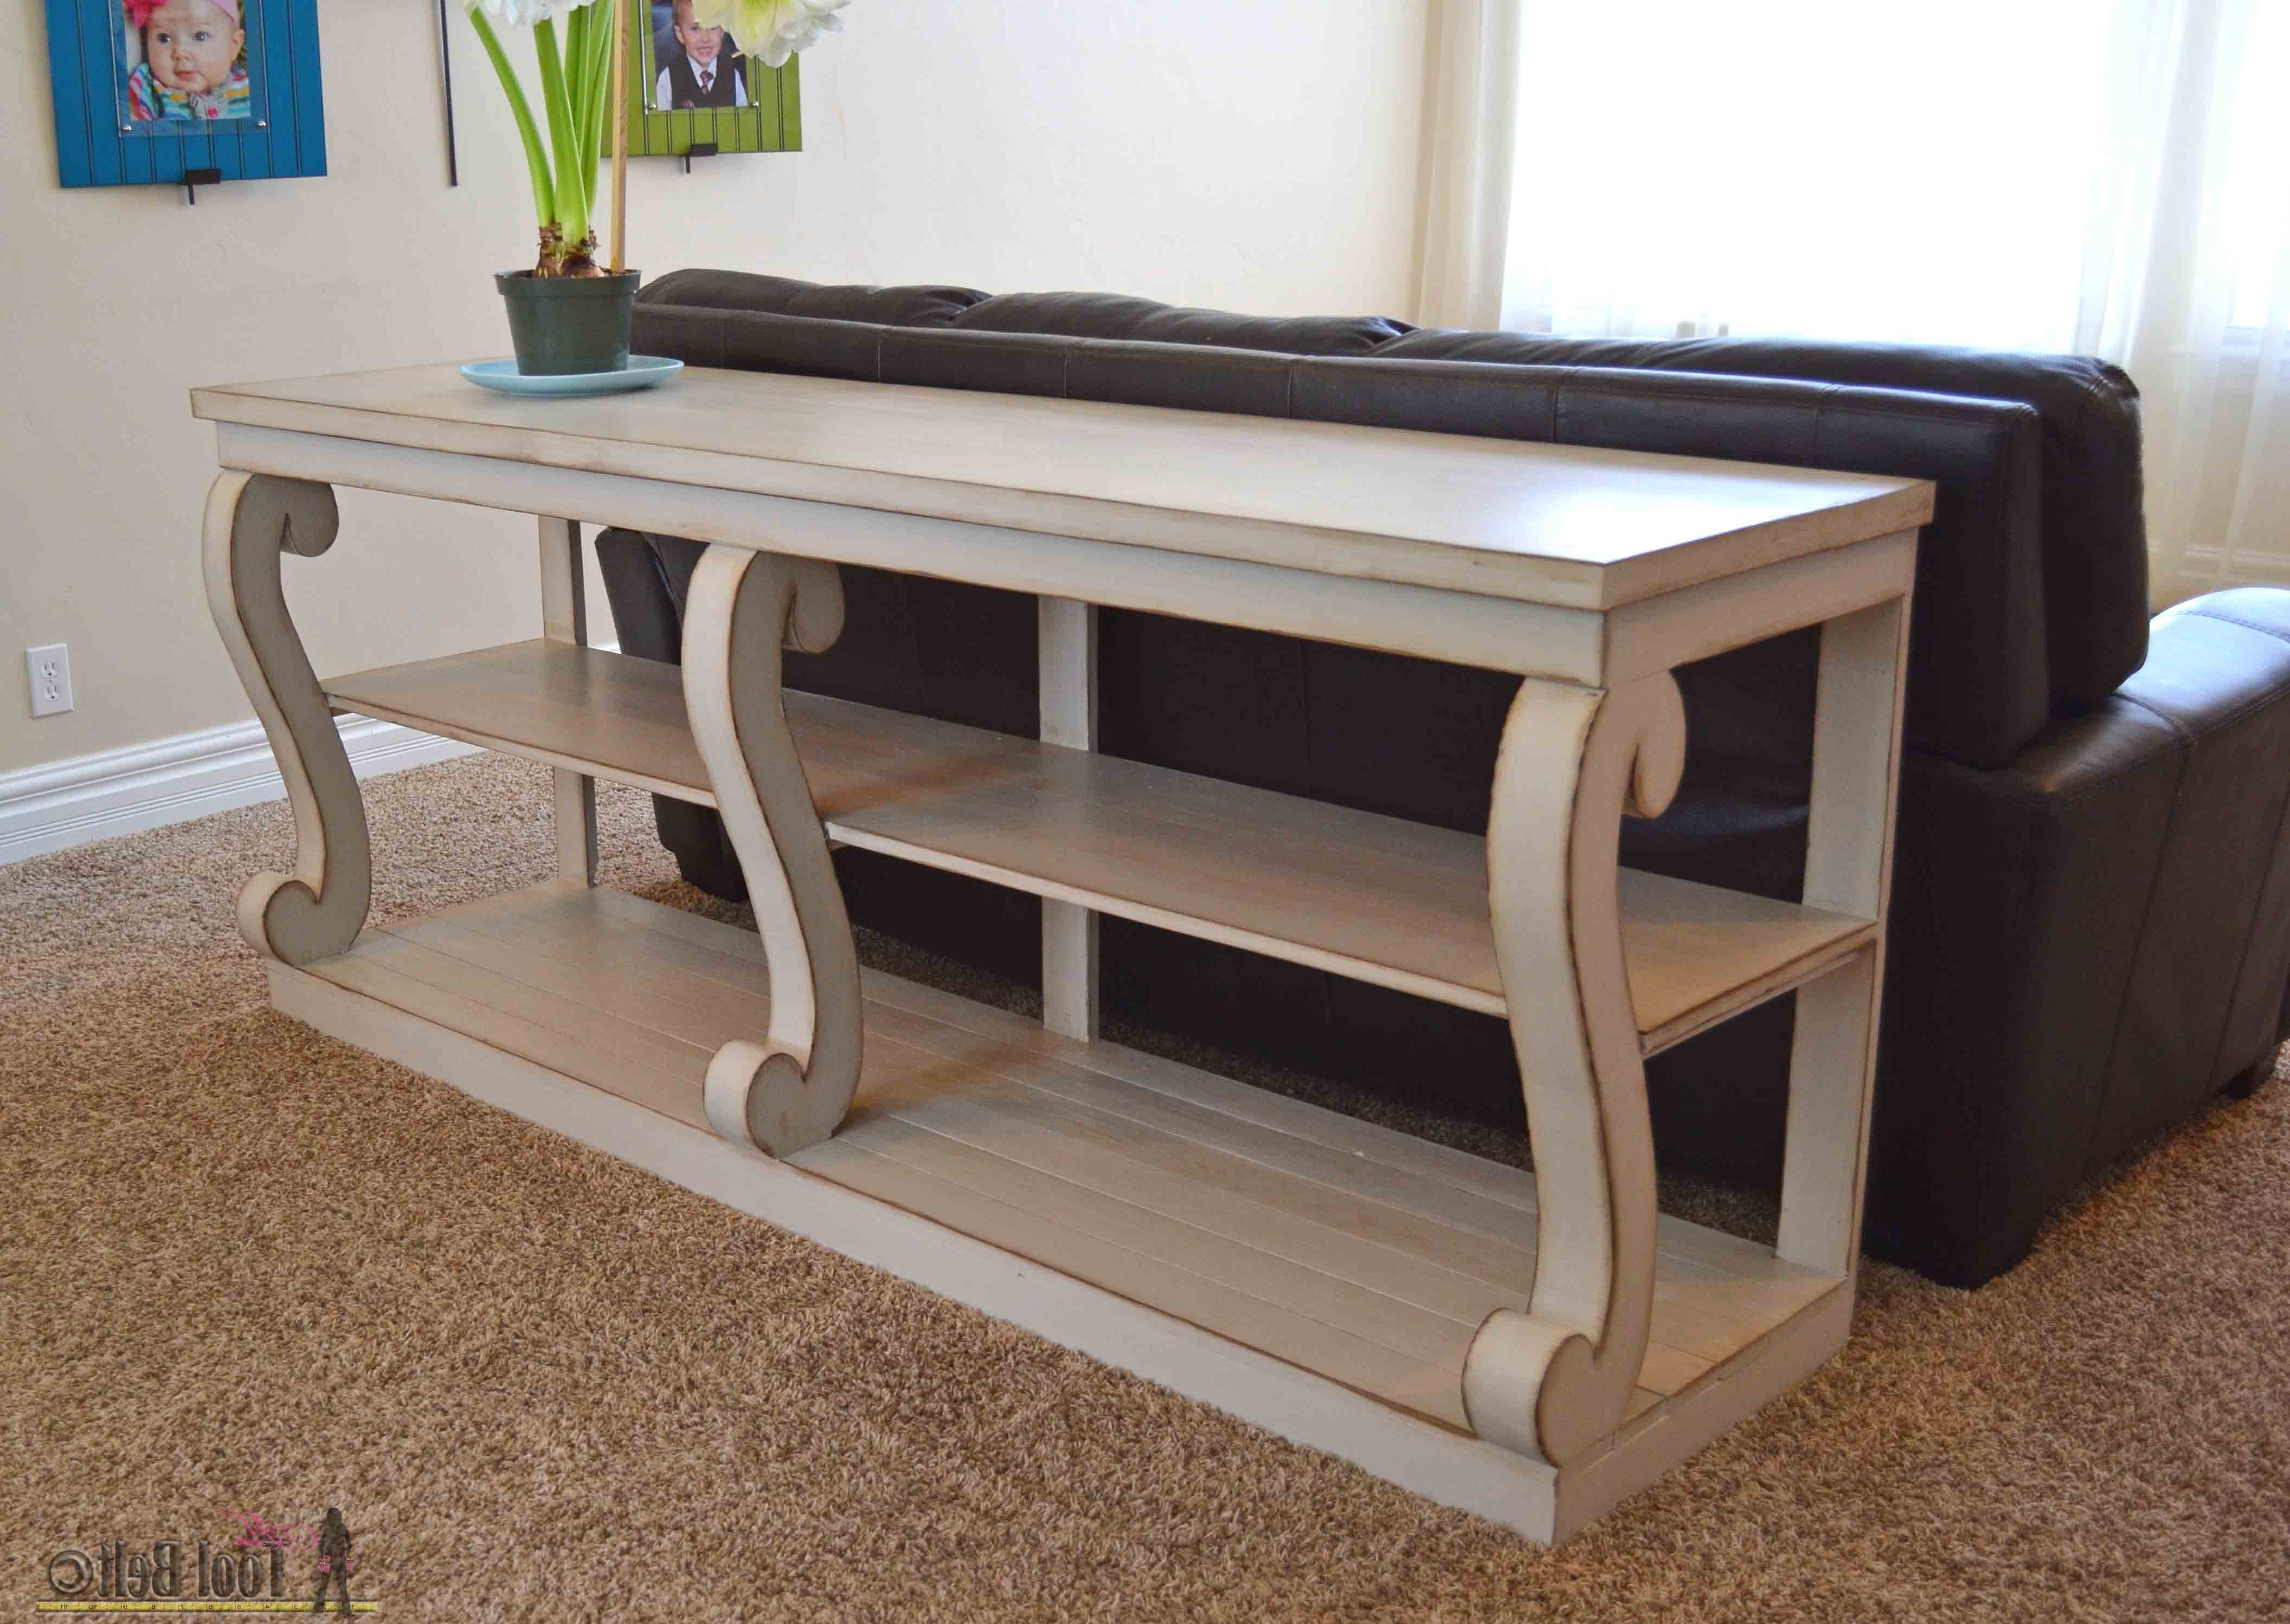 Fashionable Sofas With Back Consoles Throughout Console Table With Scroll Legs – Her Tool Belt (View 2 of 15)